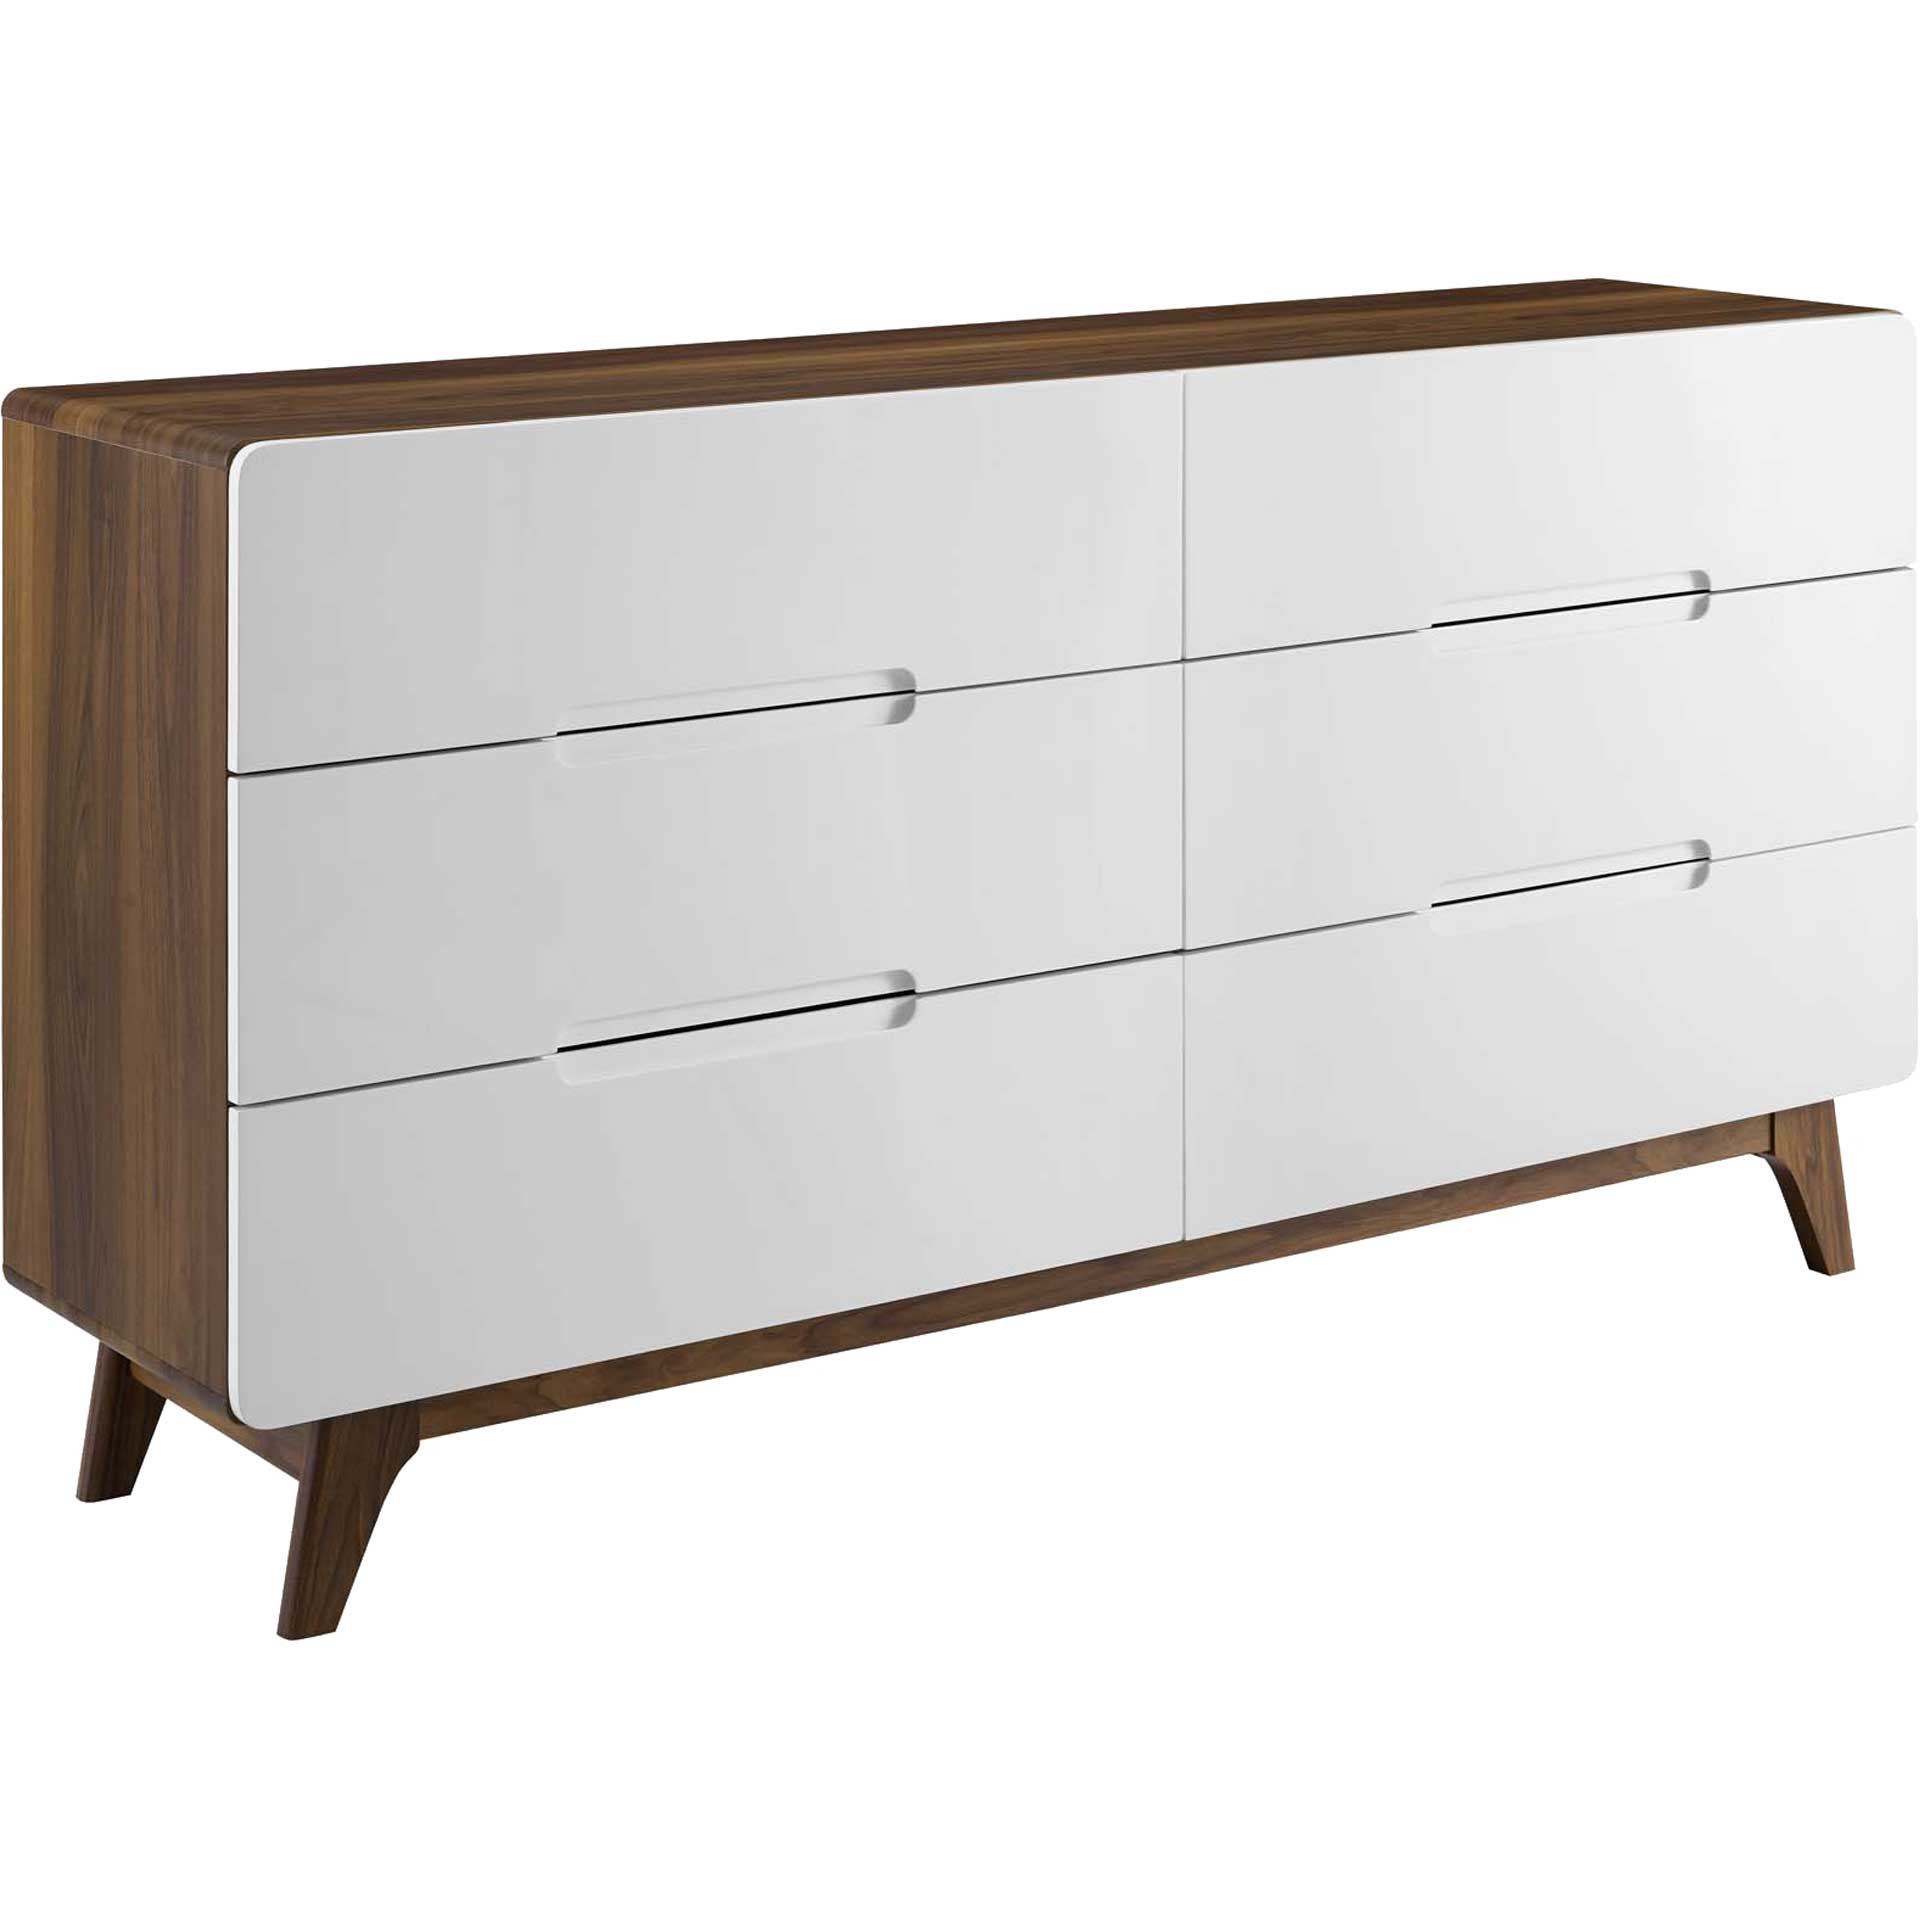 Orion Six-Drawer Wood Dresser Walnut/White